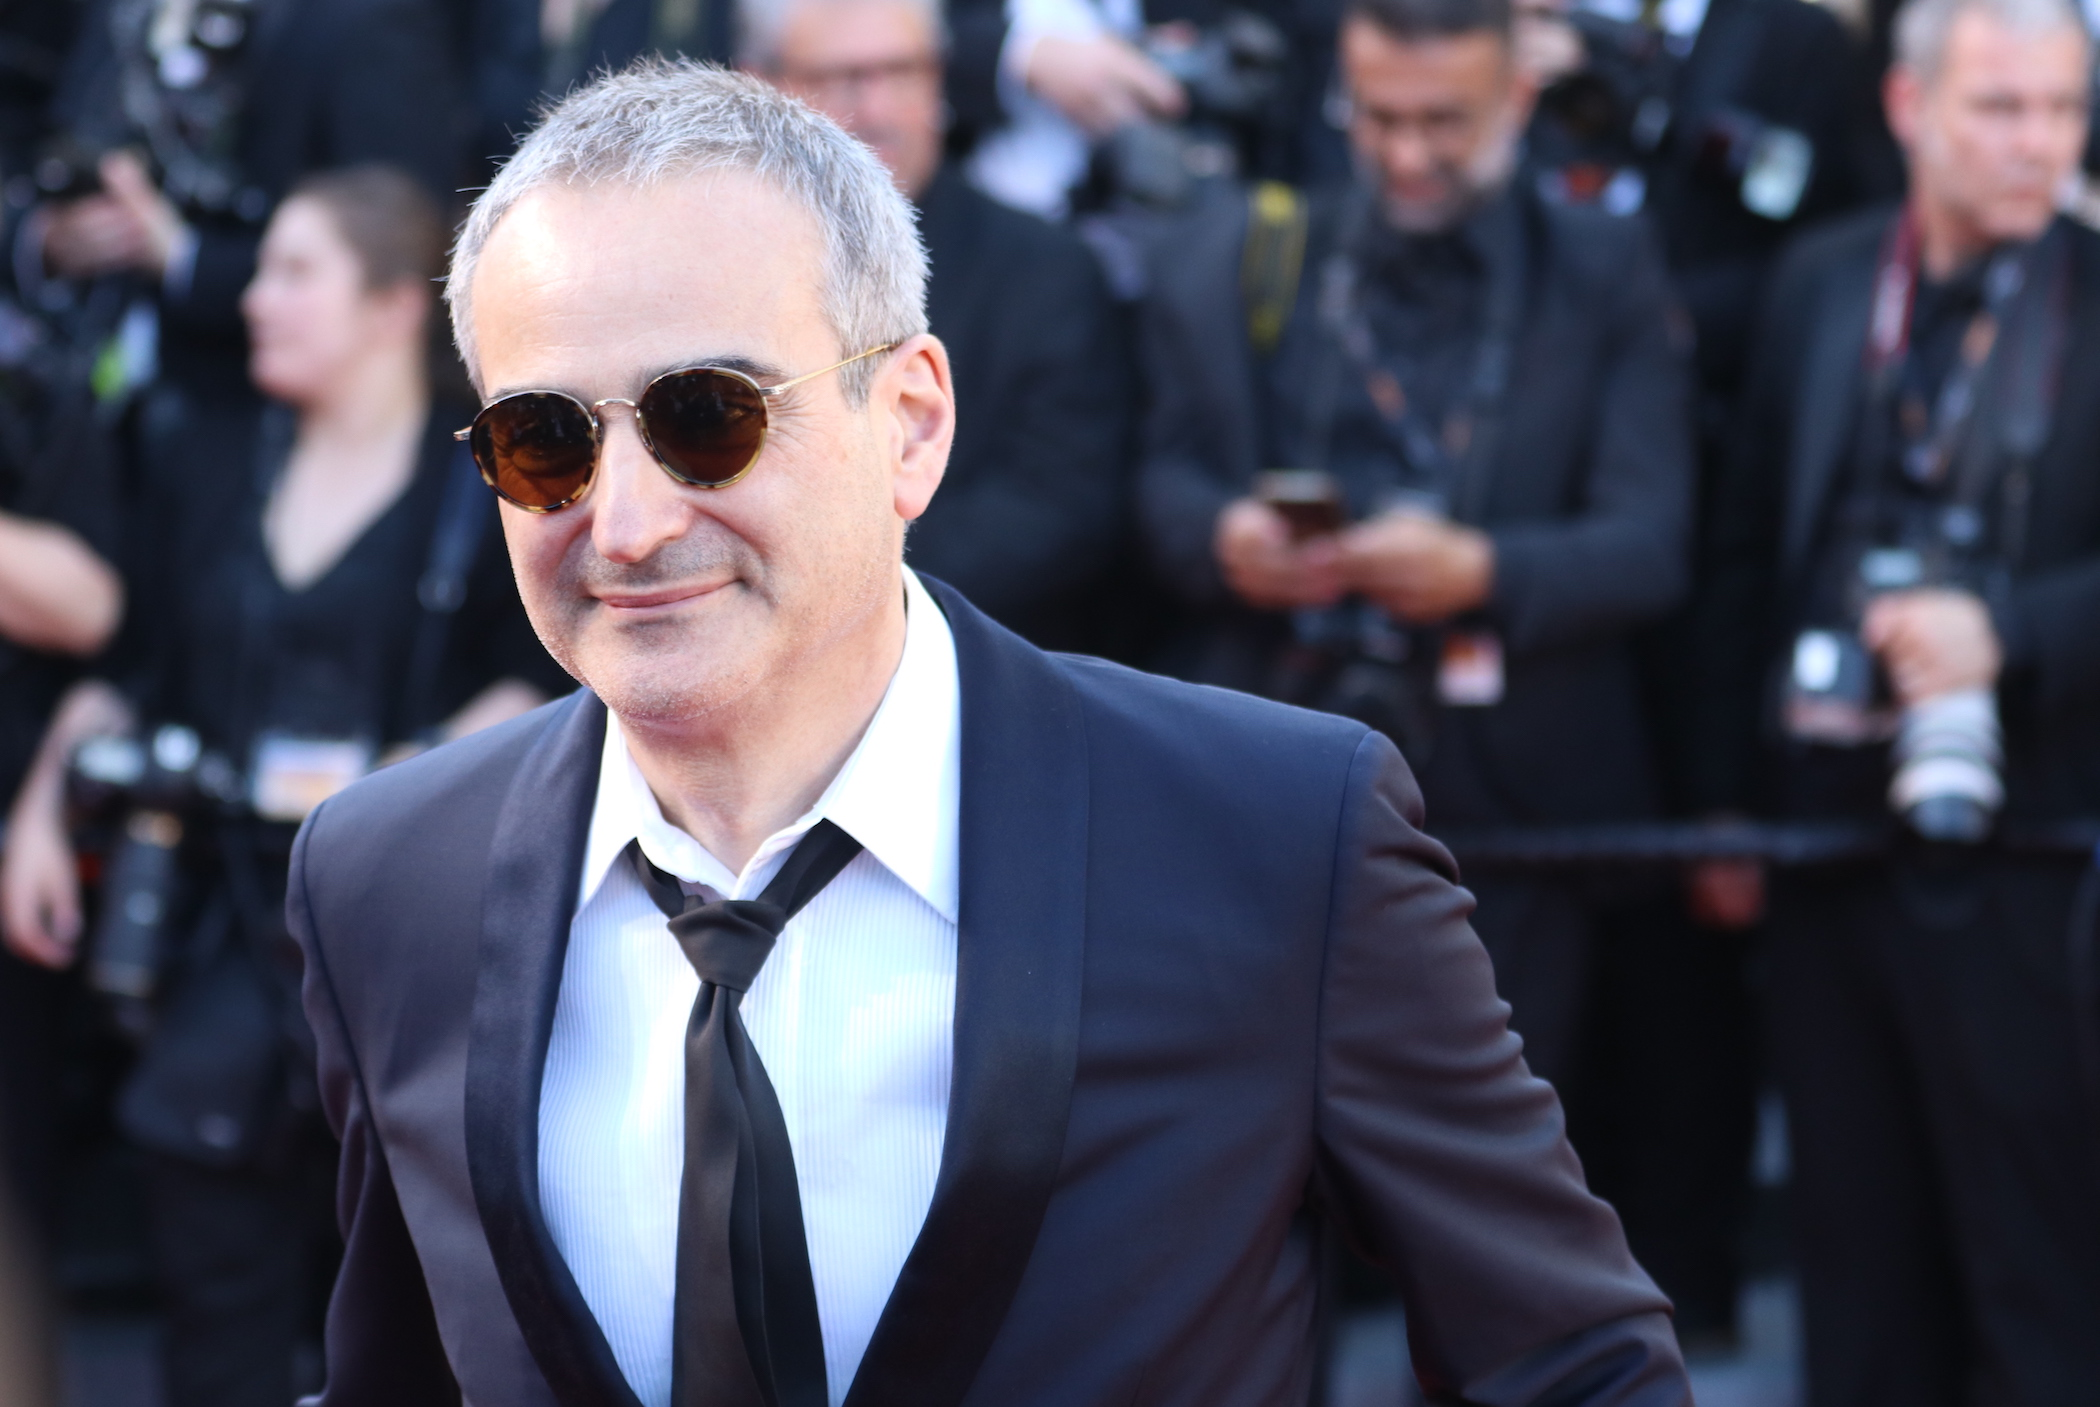 Cannes 2017: Olivier Assayas sul red carpet inaugurale